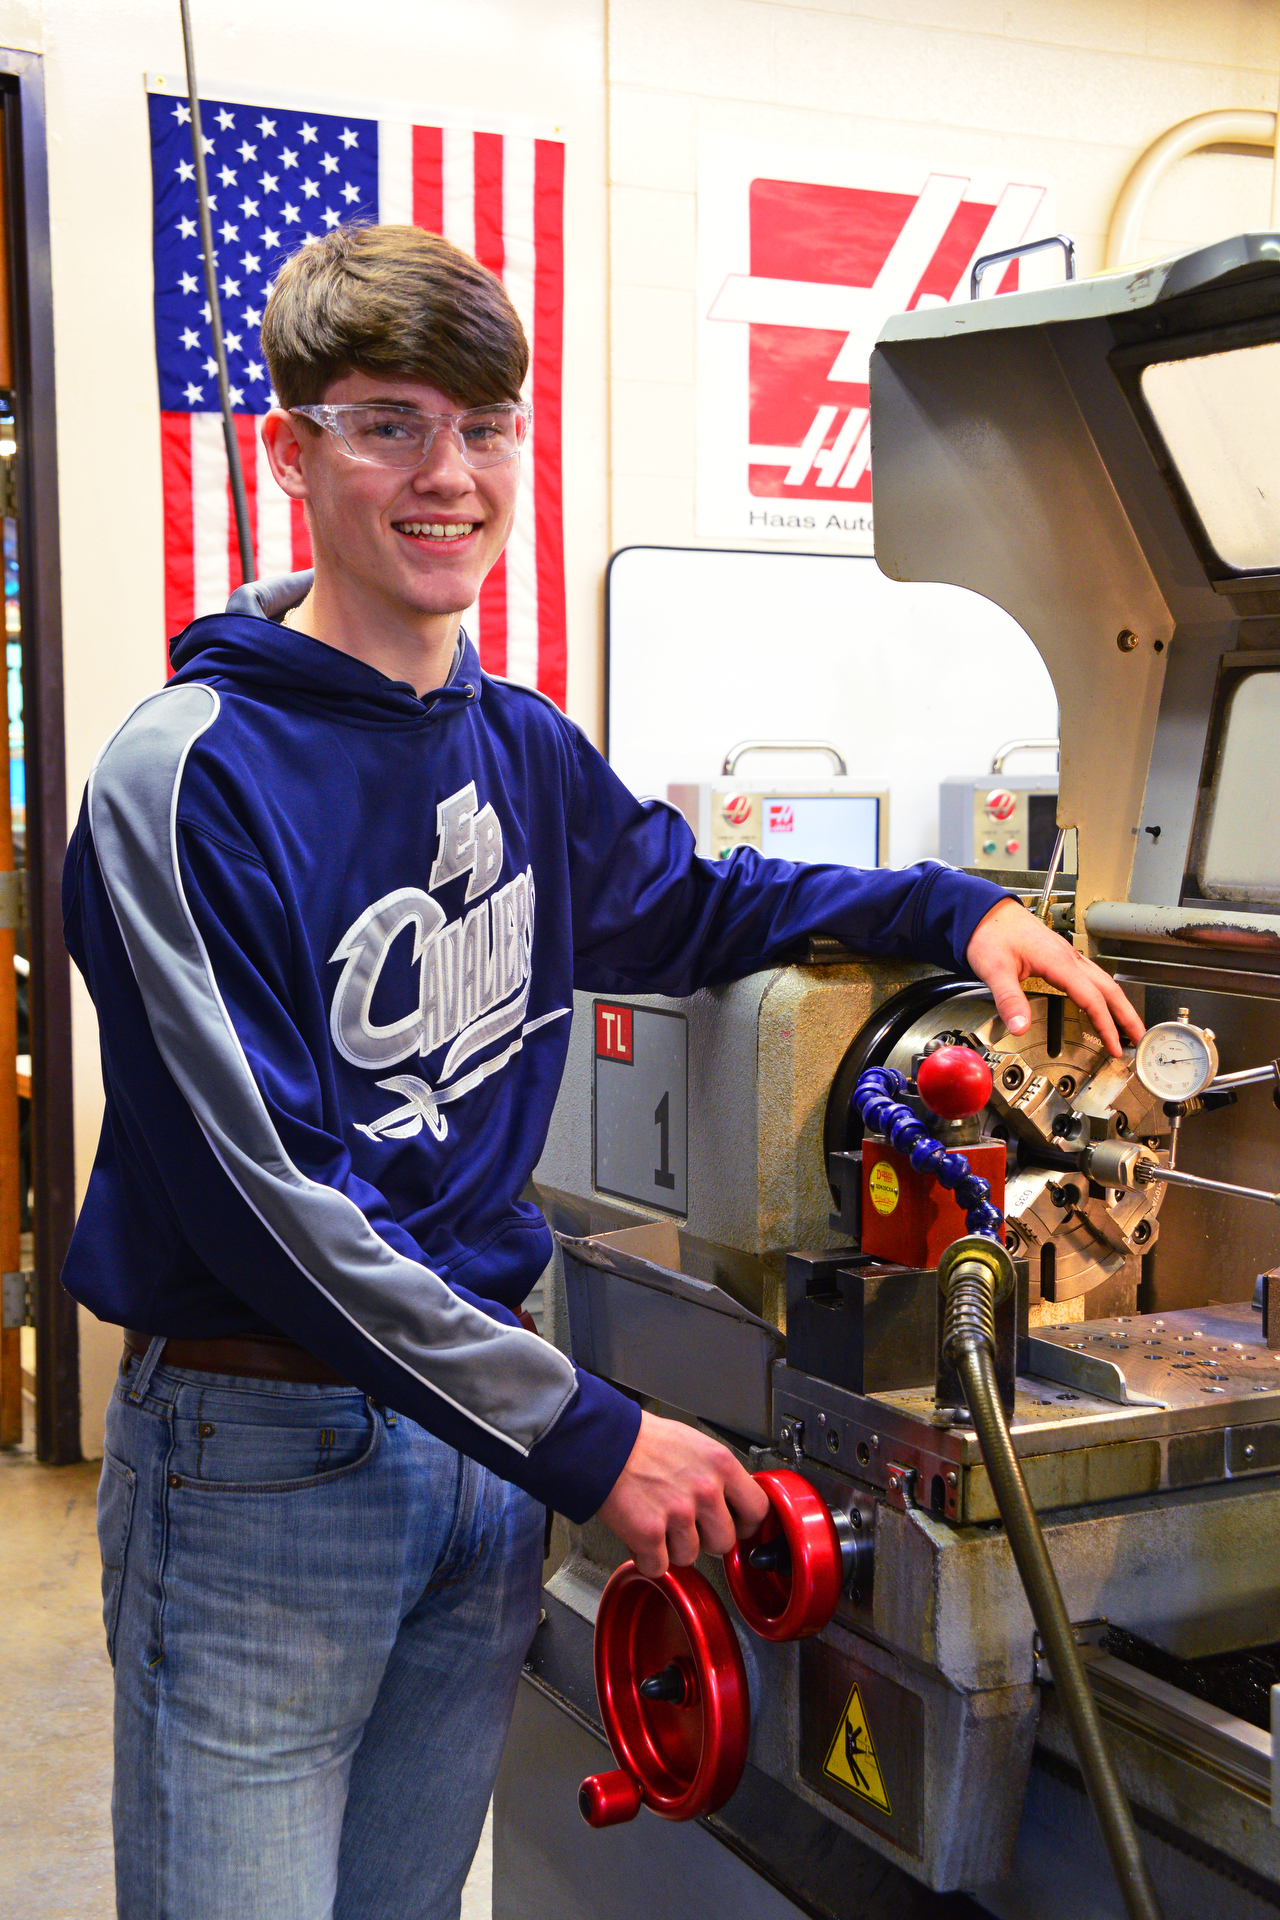 Student works on a machine.